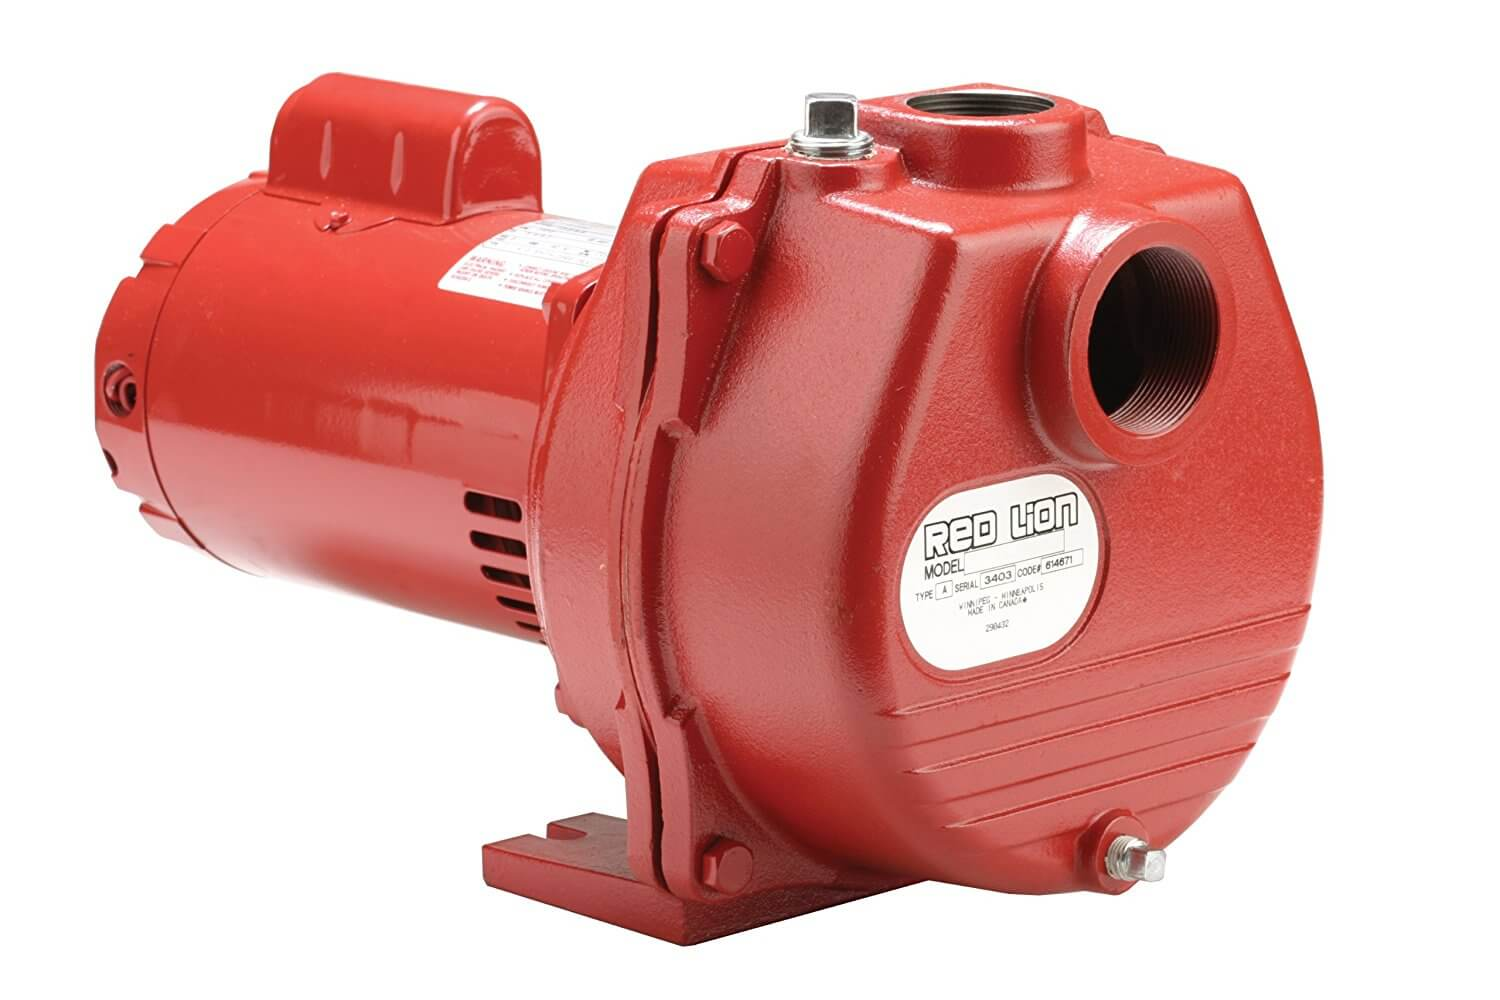 Red Lion RLSP-200 Sprinkler Pump